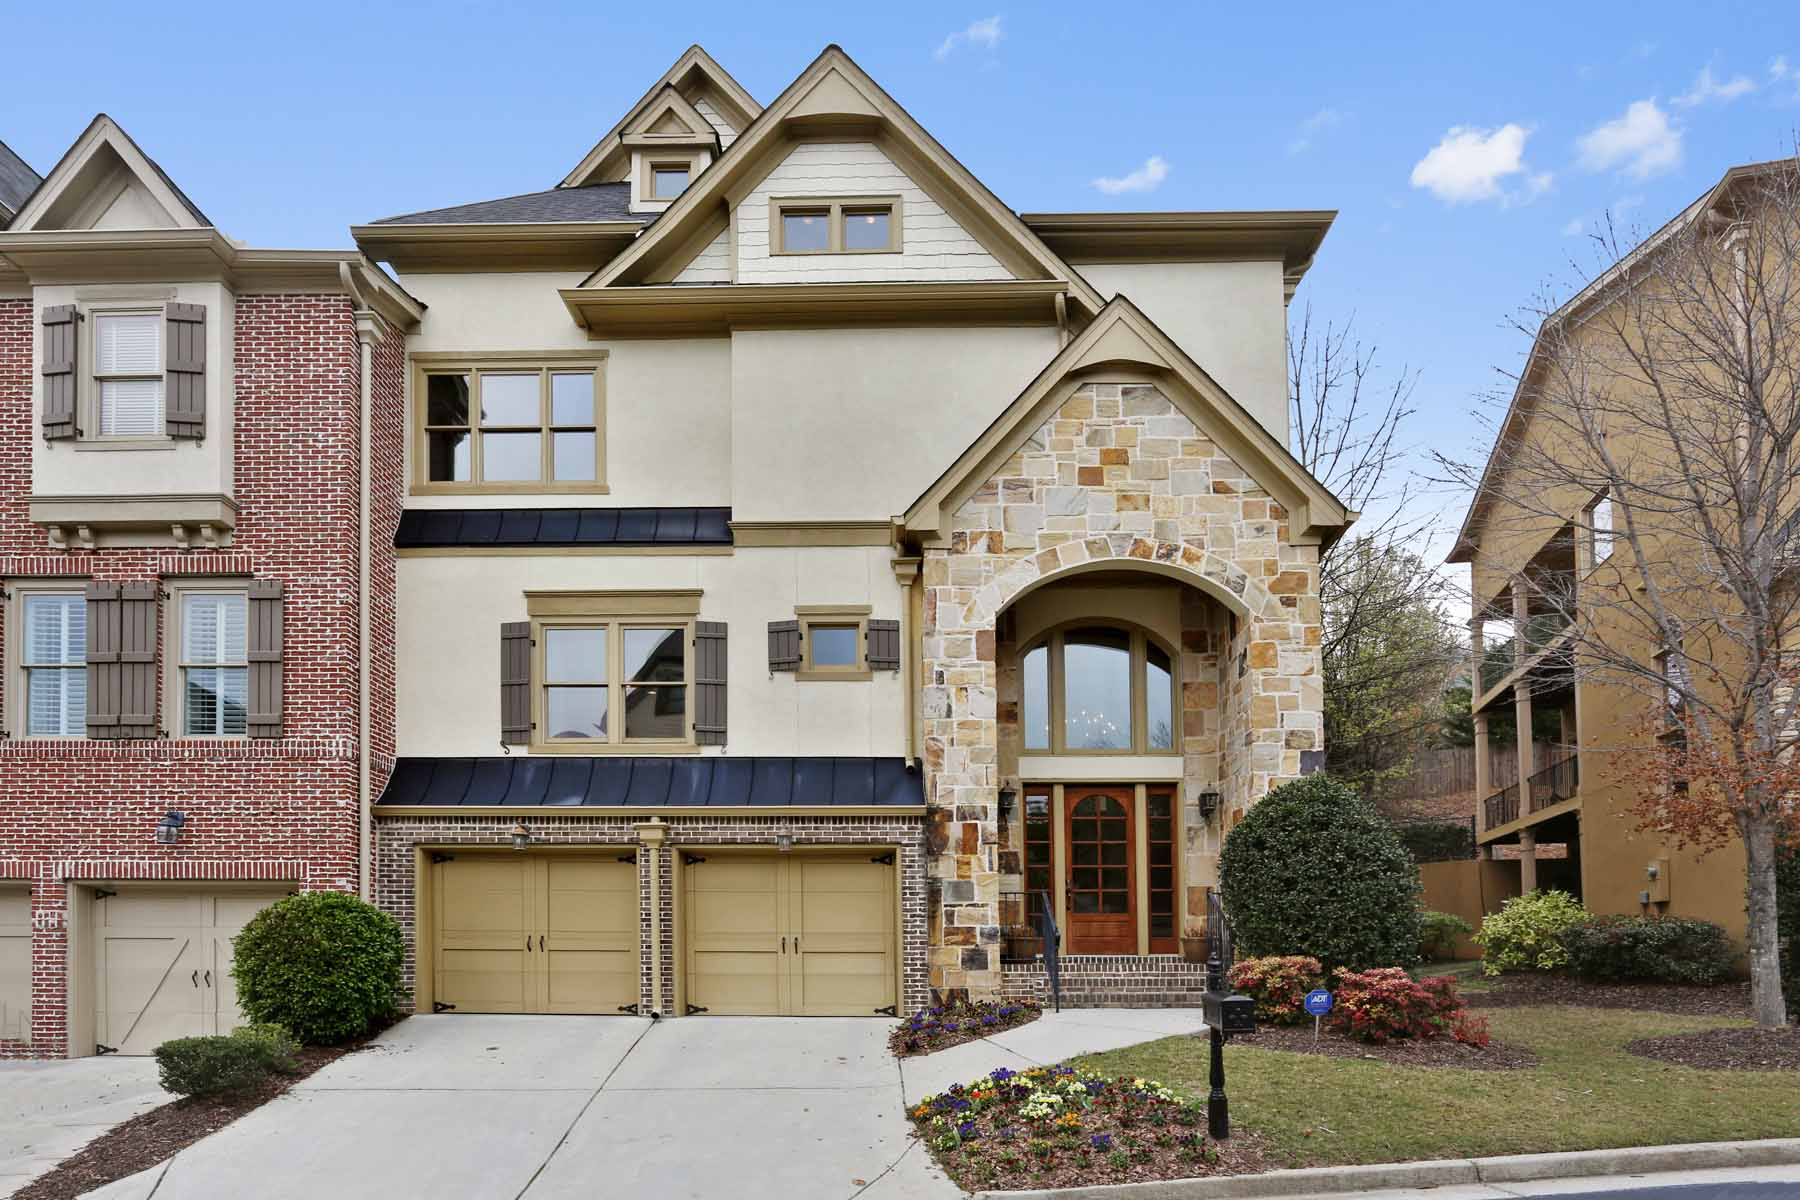 Townhouse for Sale at A Sophisticated Buckhead Brookhaven Townhome 1960 Saxon Valley Circle Atlanta, Georgia, 30319 United States